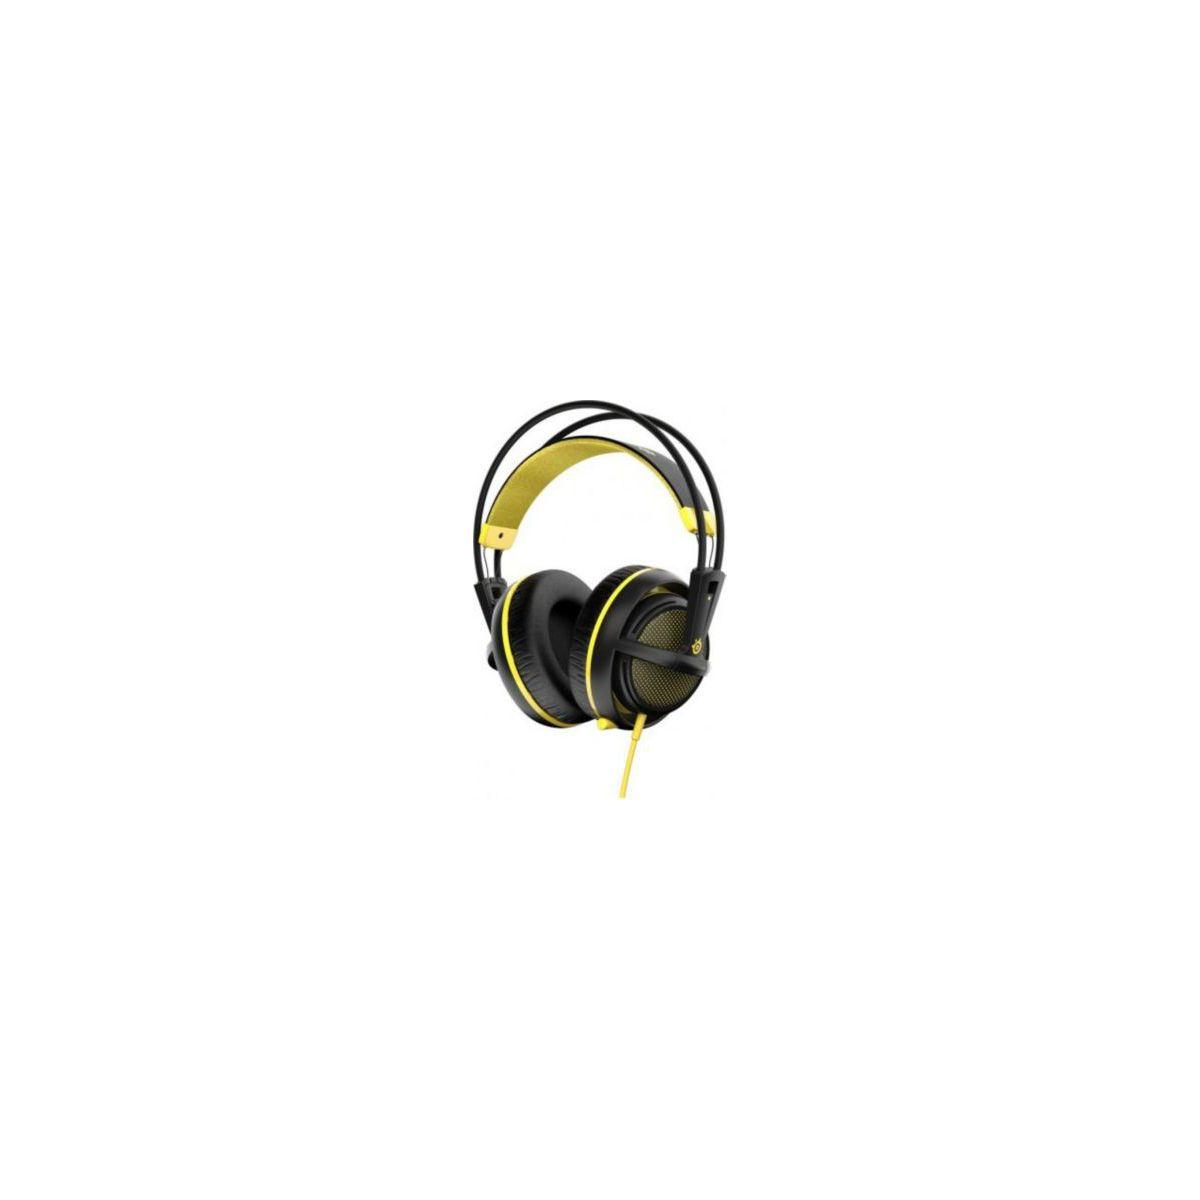 Casque micro gamer steelseries siberia 200 proton yellow (photo)